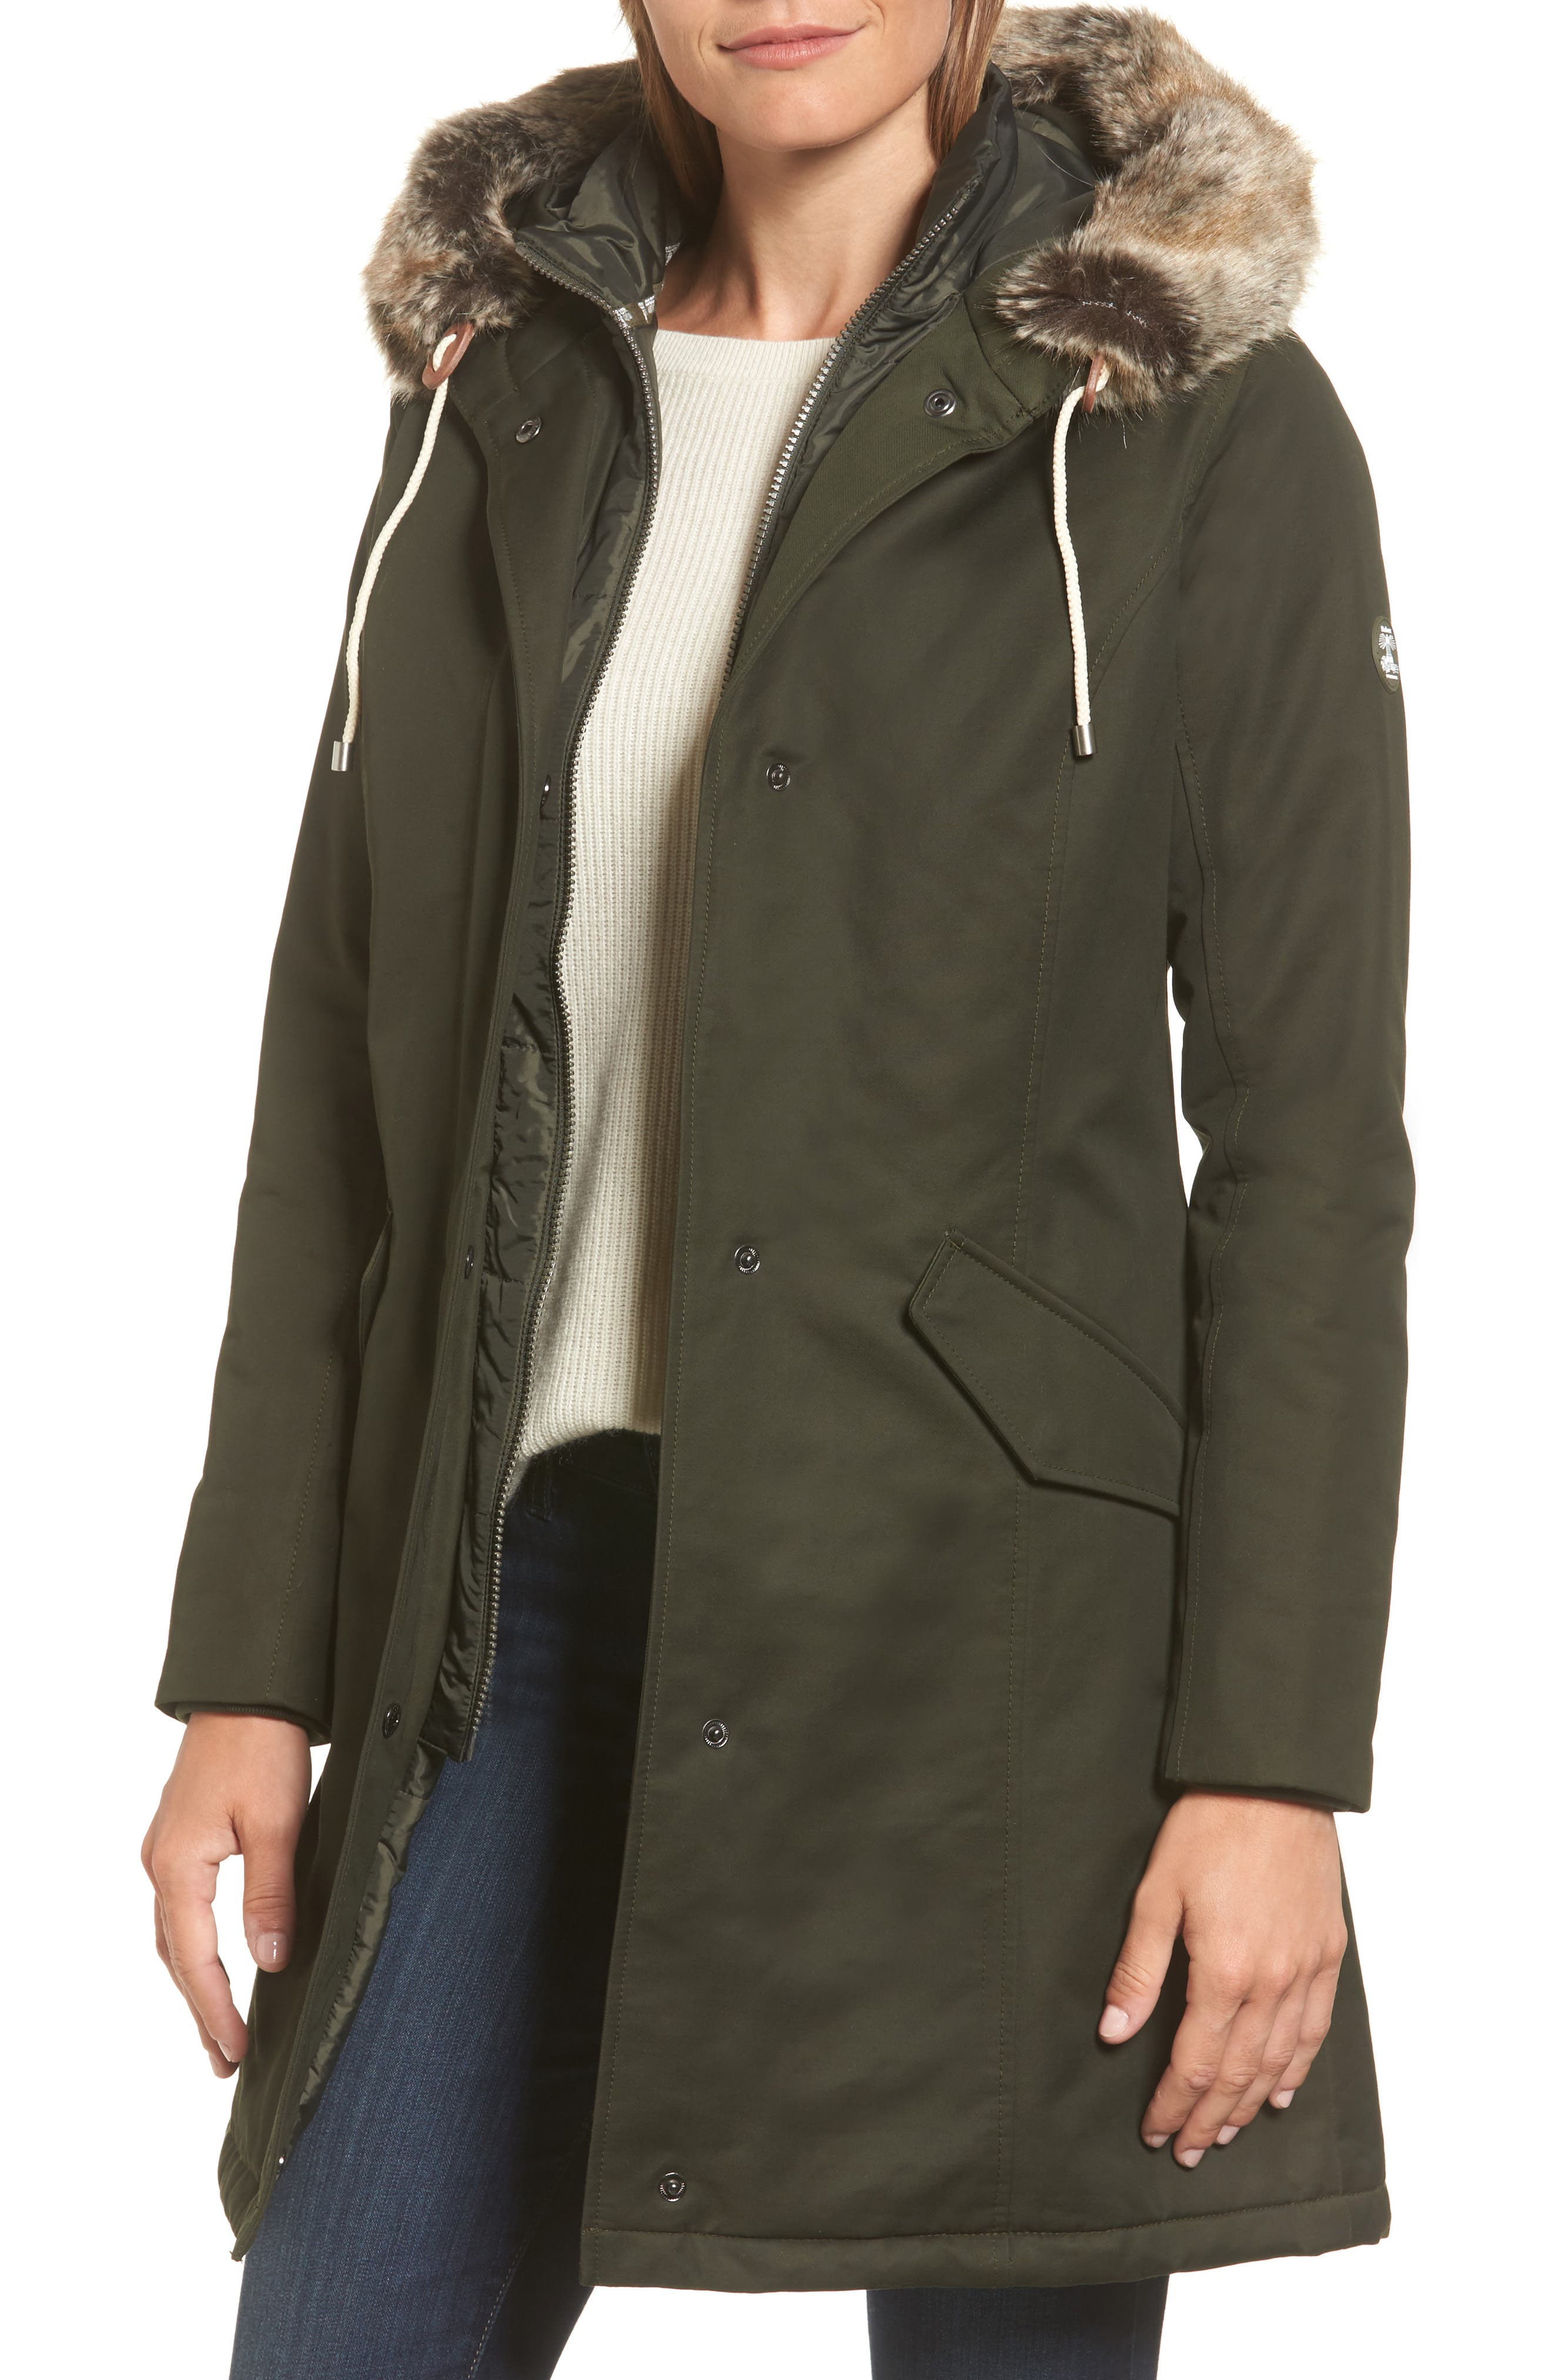 Filey Waterproof Hooded Jacket with Faux Fur Trim, Main, color, 302